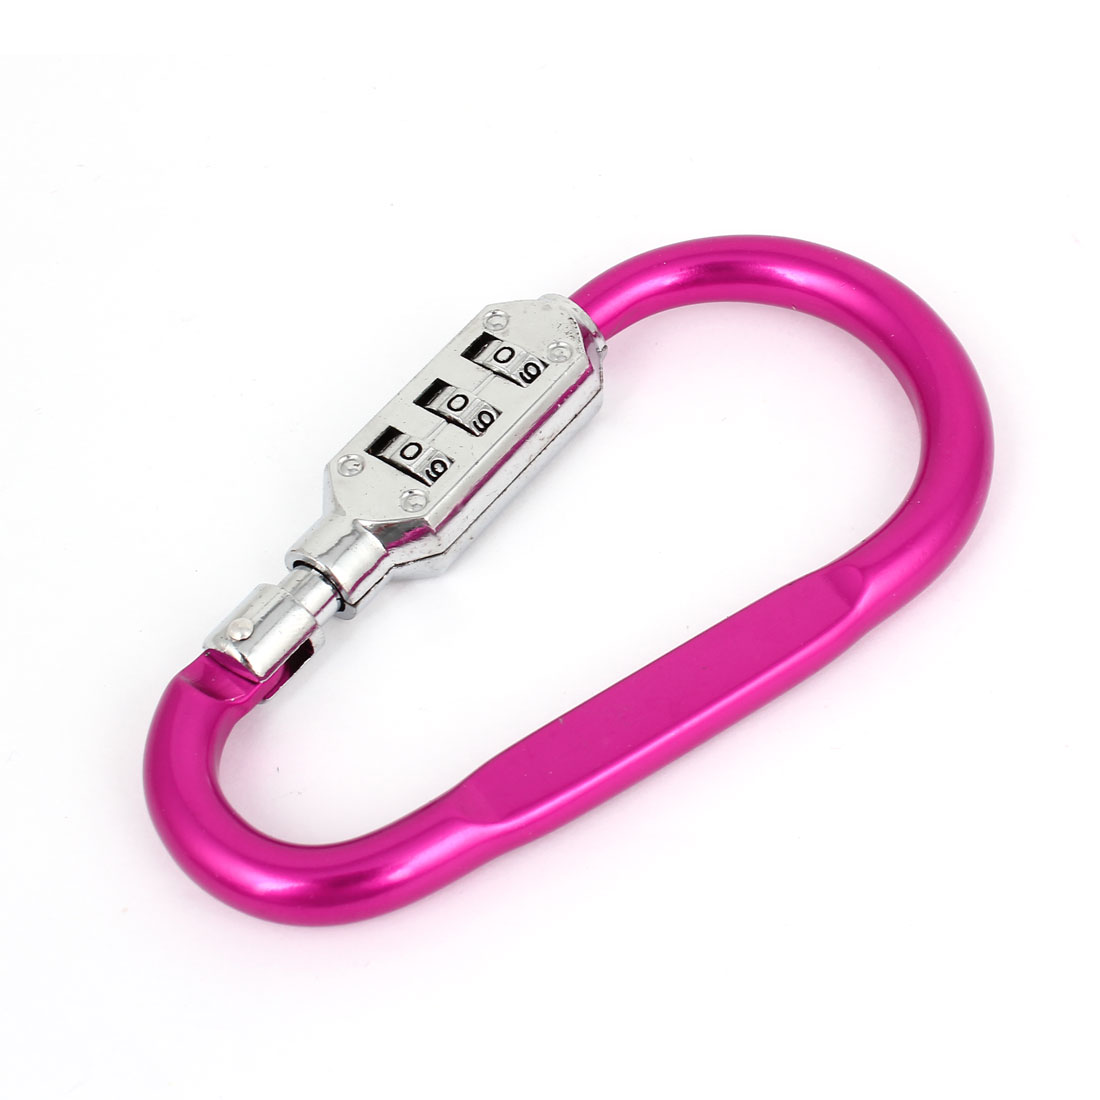 Outdoor Hiking 3 Digits Resettable Combination Number Padlock Carabiners Hook Fuchsia Silver Tone